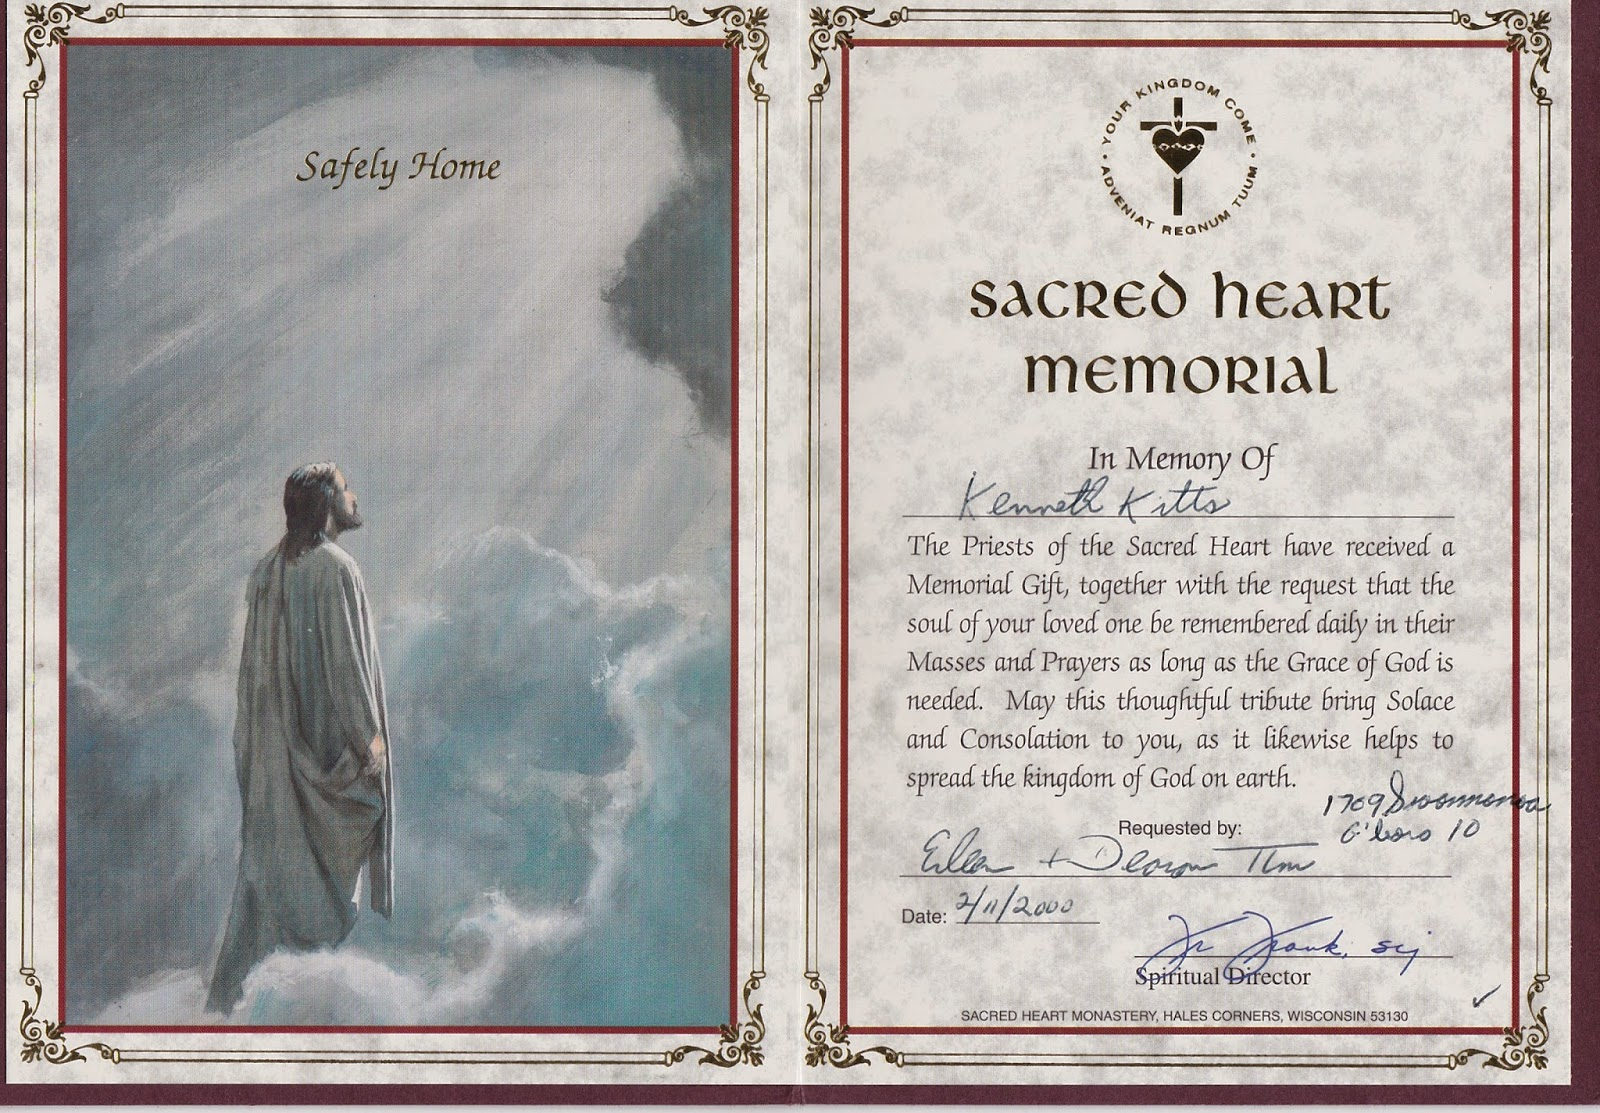 Dawning Genealogy: The Death of Our Son Part 3